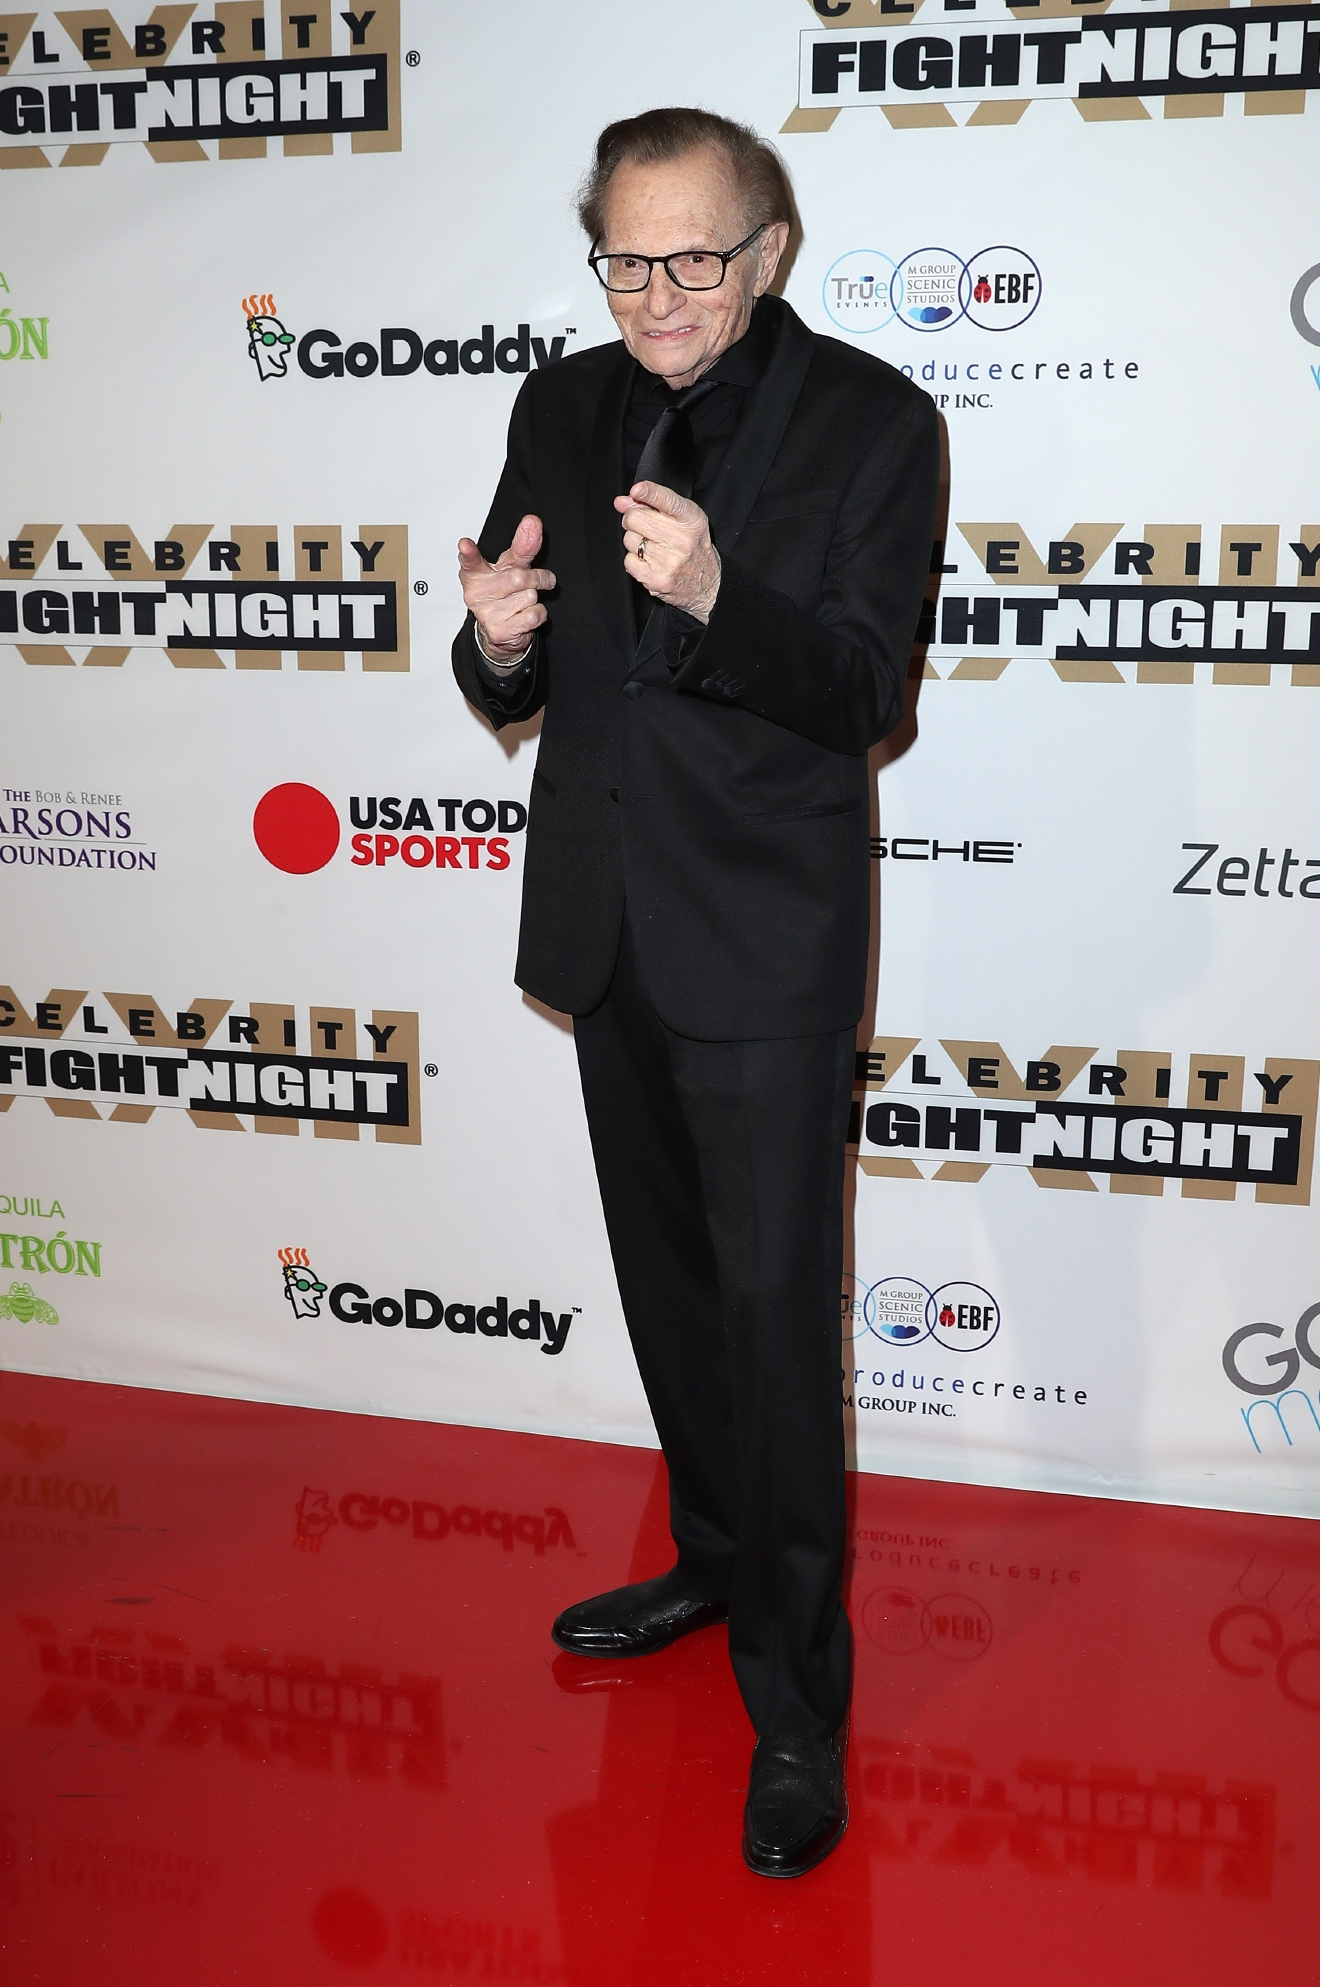 Larry King arrives at Muhammad Ali's Celebrity Fight Night at JW Marriott Desert Ridge Resort & Spa in Phoenix, Arizona, March 18, 2017. (Credit: Judy Eddy/WENN.com)